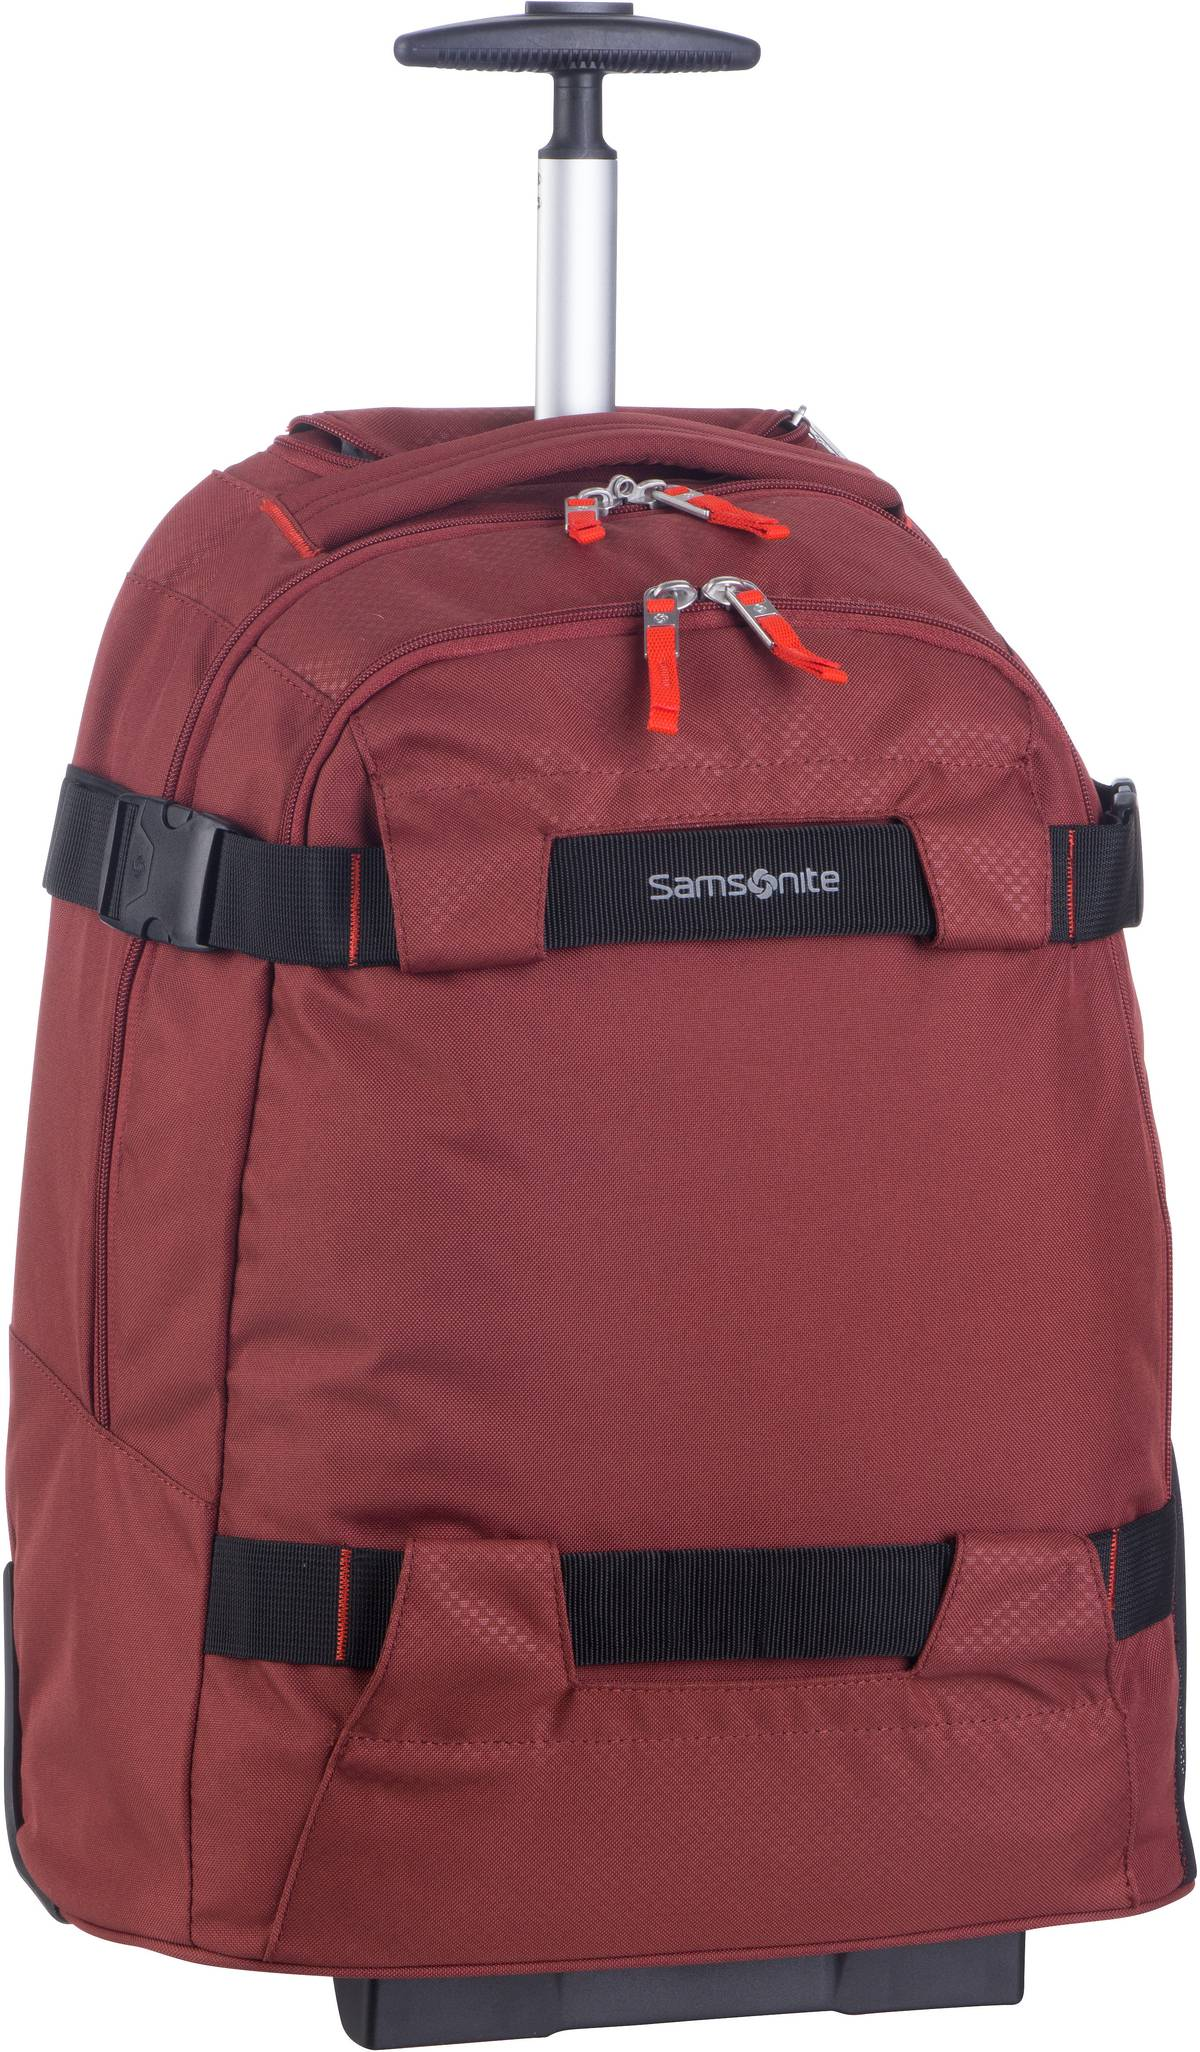 Rucksack-Trolley Sonora Laptop Backpack/Wh 55 Barn Red (30 Liter)